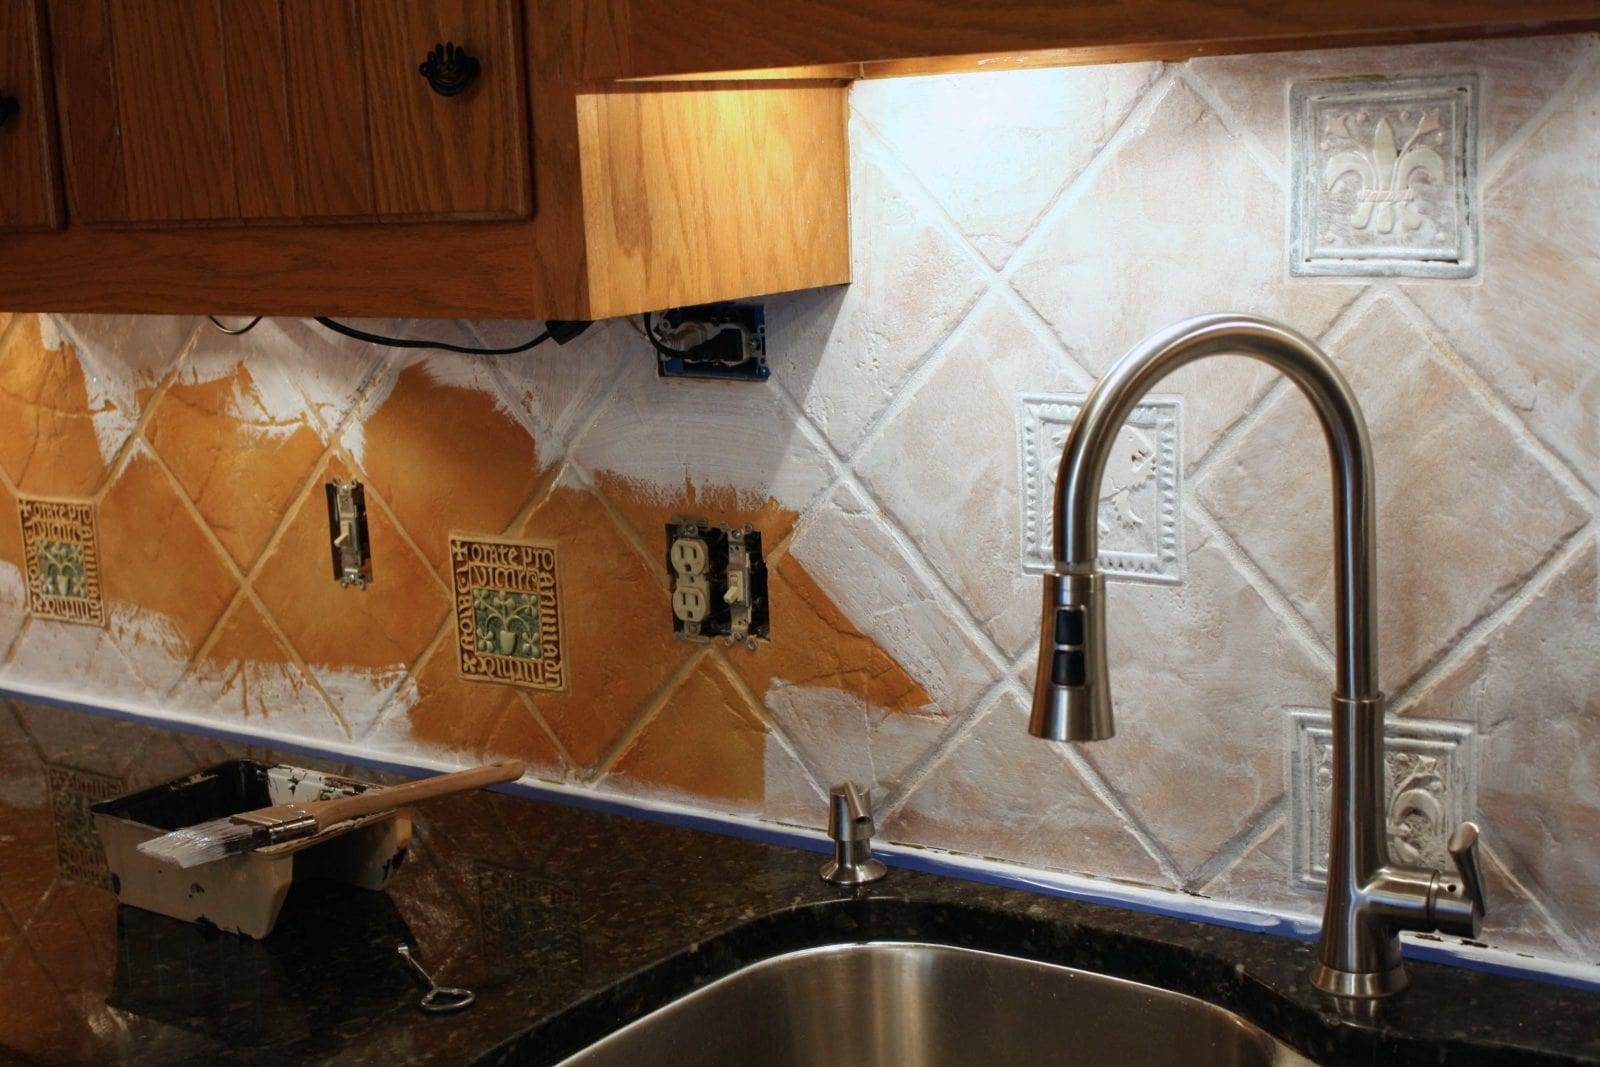 Kitchen Tiles Painted Over how to paint a tile backsplash: my budget solution! | designer trapped